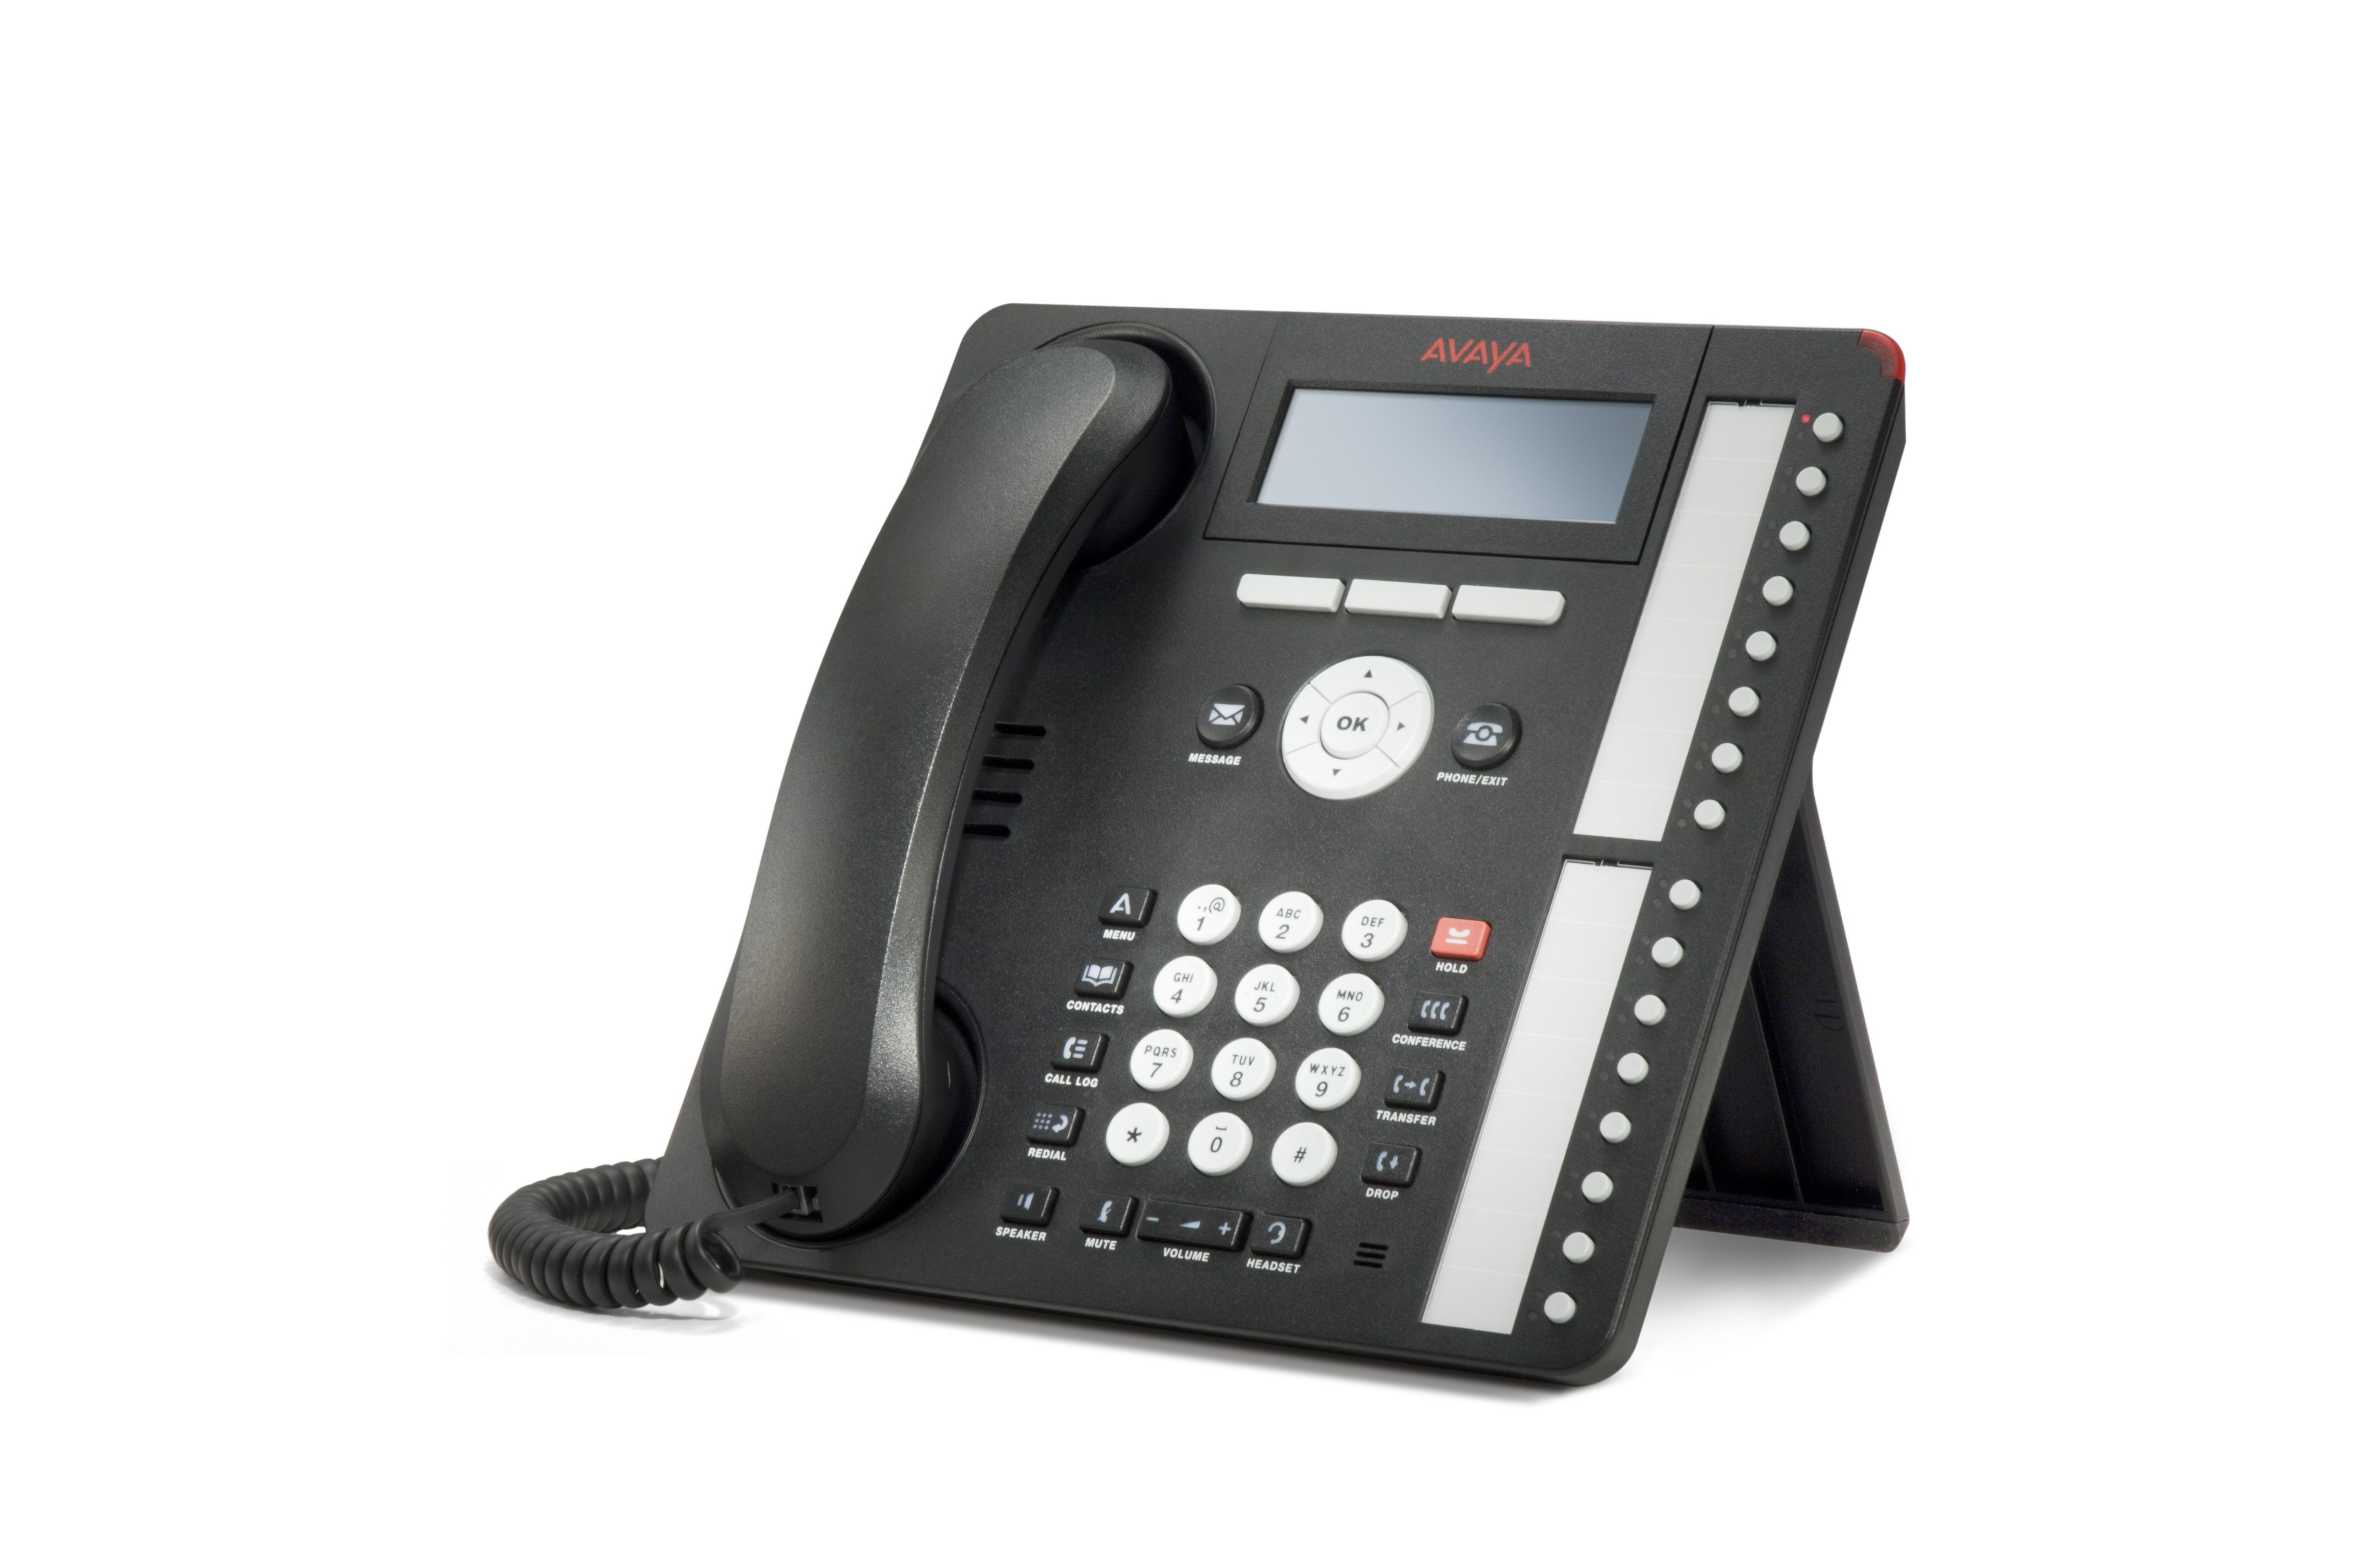 office open networks standards toronto phone angle ip sip mitel phones trc avaya right systems